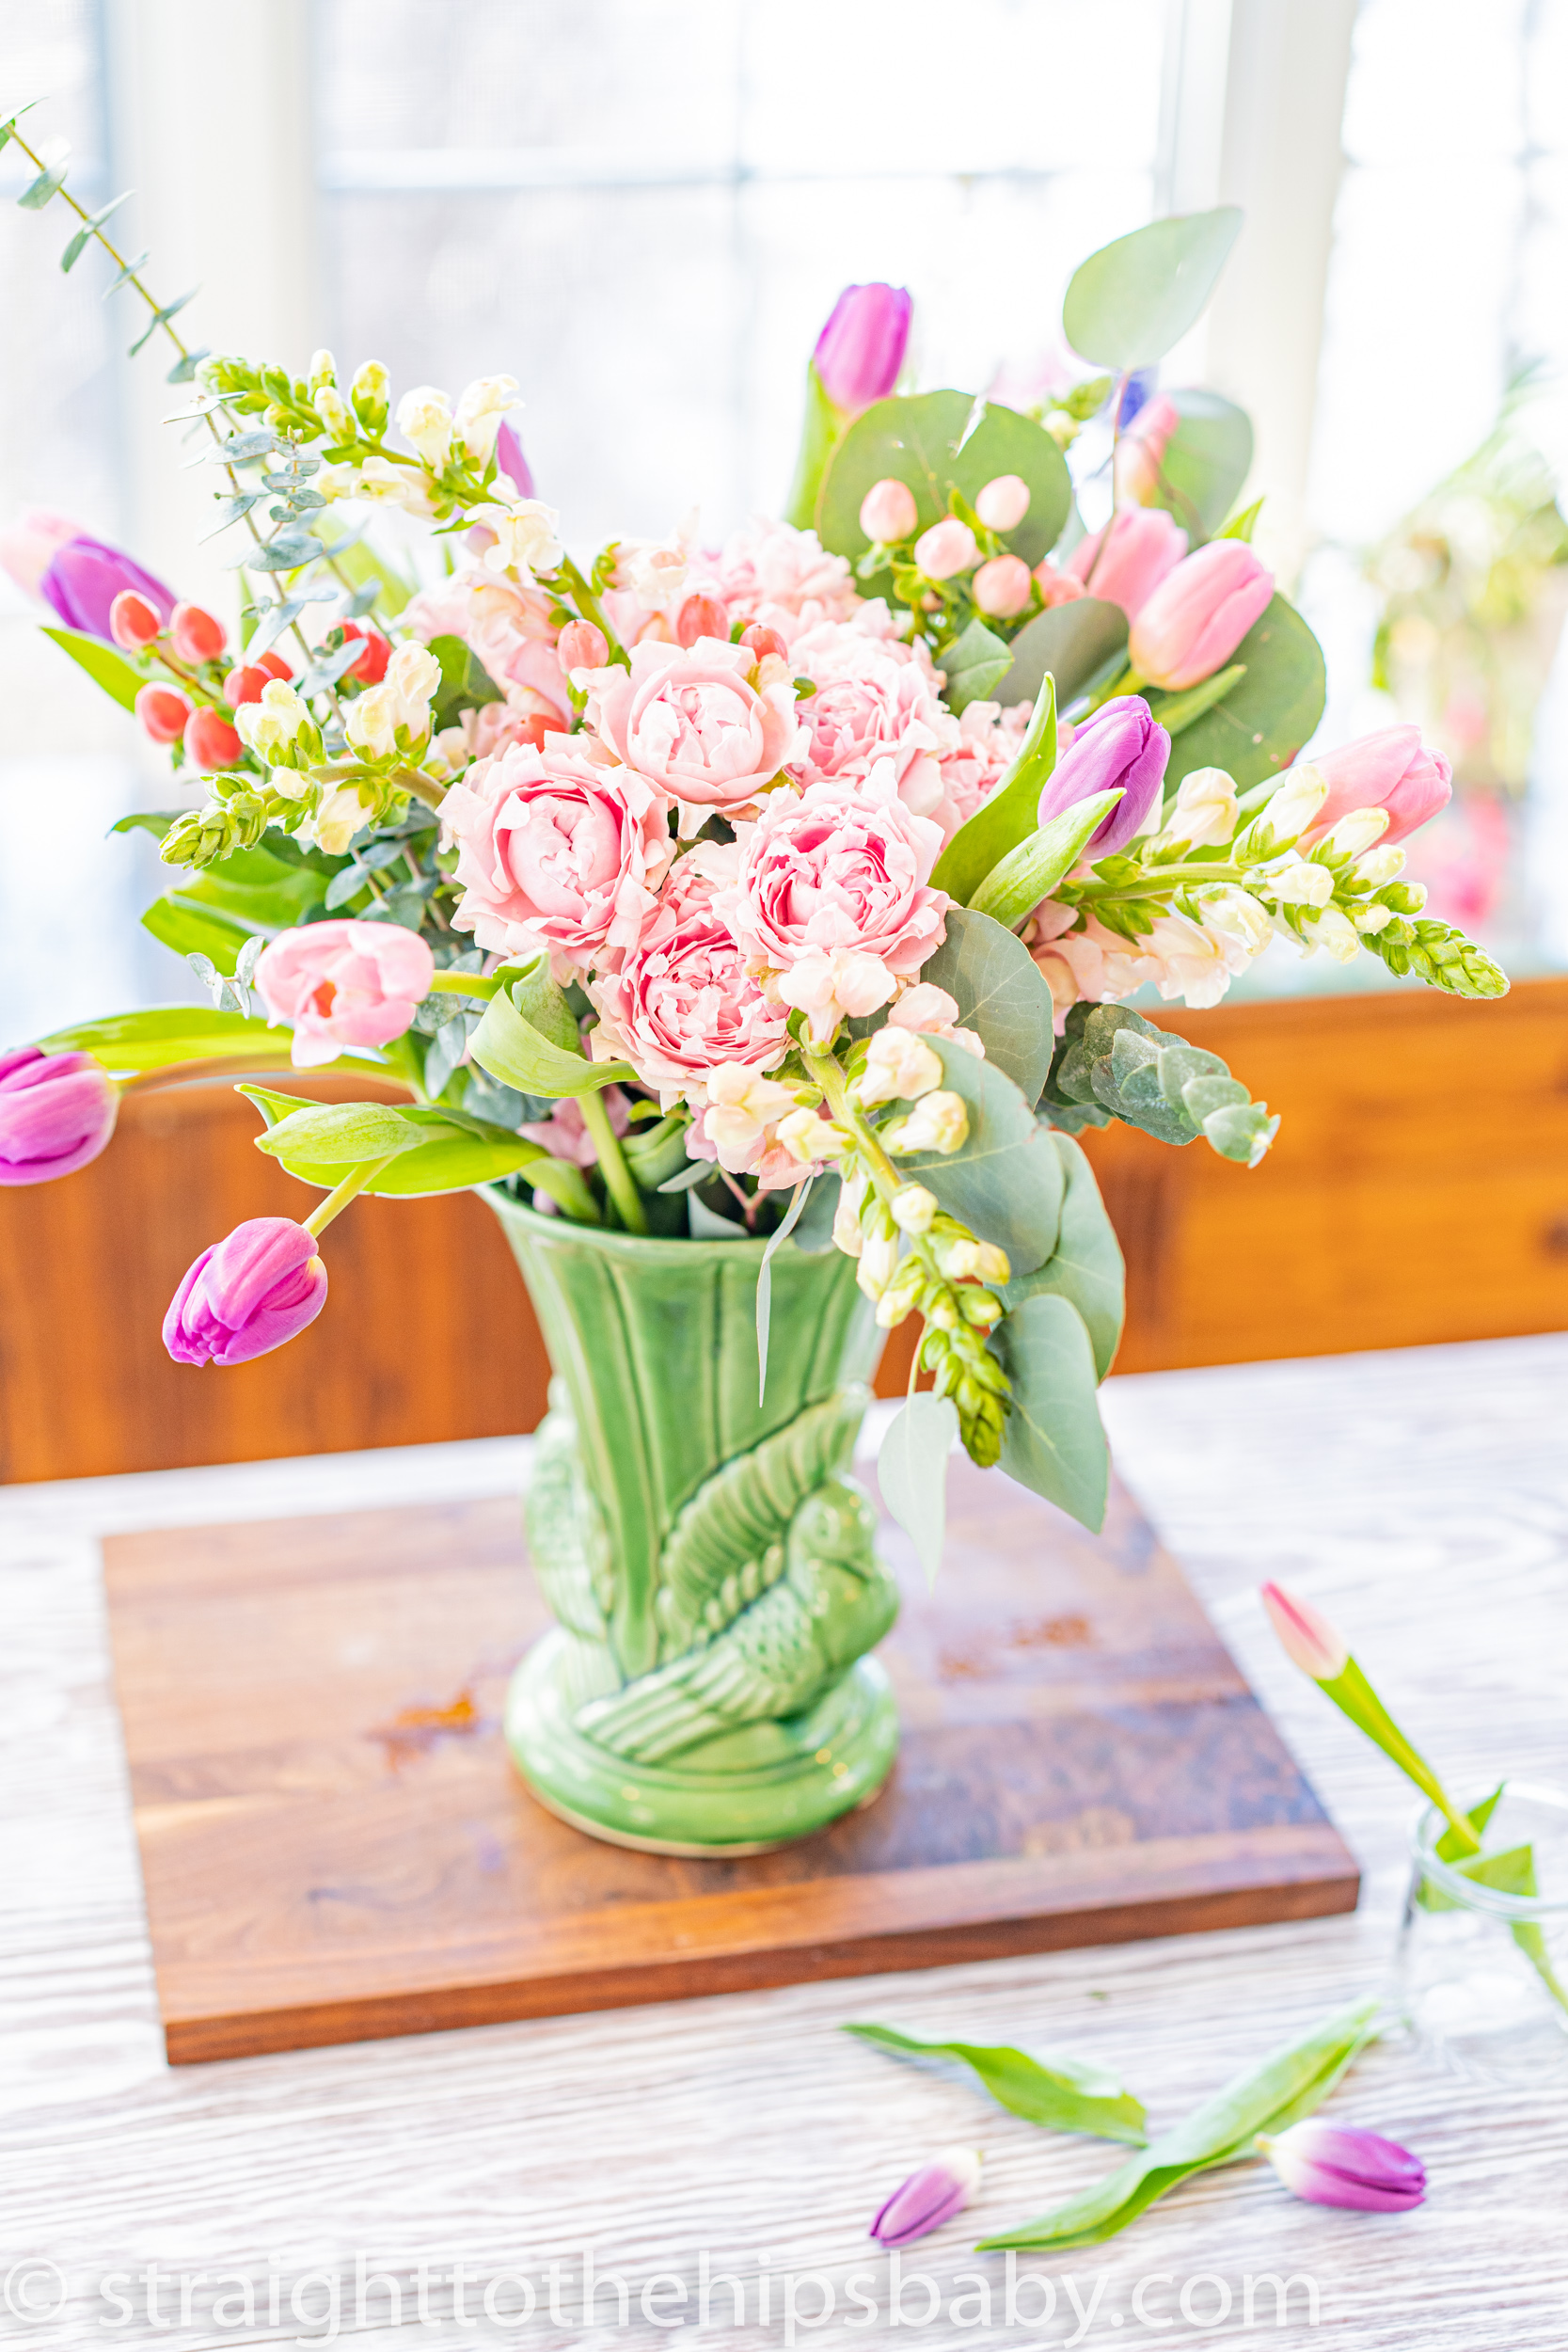 a finished pastel passover flower arrangement, in a green tall vase